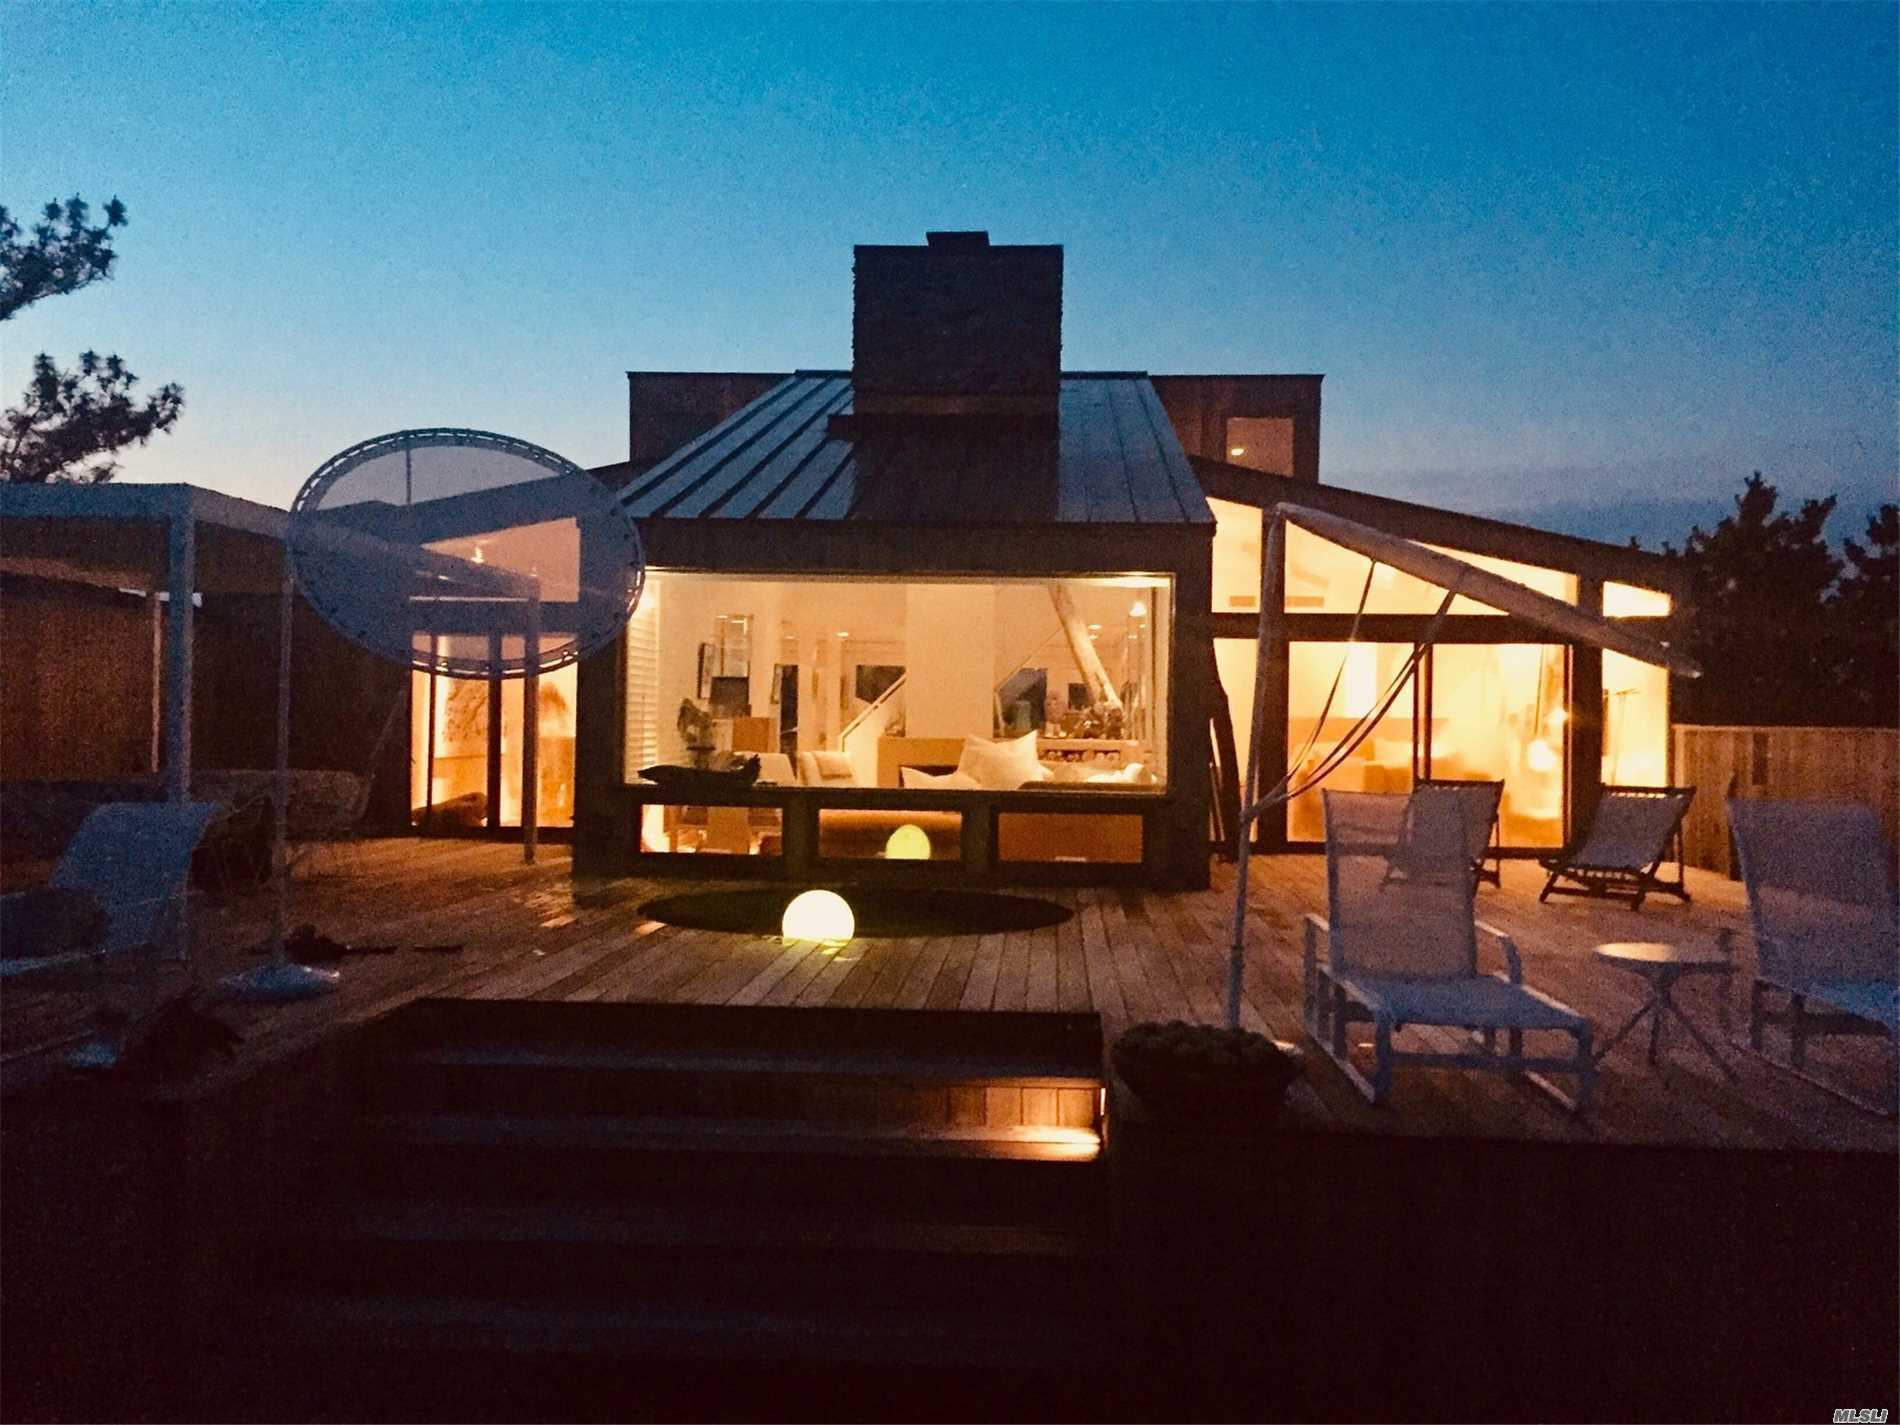 Westhampton Beach, Immaculate Oceanfront, Modern: Sleek And Chic 3 Bedroom, 3 Full Baths, Open Living And Dining, Overlooking The Ocean, Perfect For Entertaining. Hot Tub, Outdoor Showers And Alfresco Dining. First Floor, Ensuite Master Bedroom Fully Opens Onto The Ocean. 365 Degree Water Views. Let The Waves Lull You To Sleep In This Beautifully Appointed Home Or Watch The Bayside Lights Twinkling. Either Choice, This Property Will Complete Your Summer Vacation!